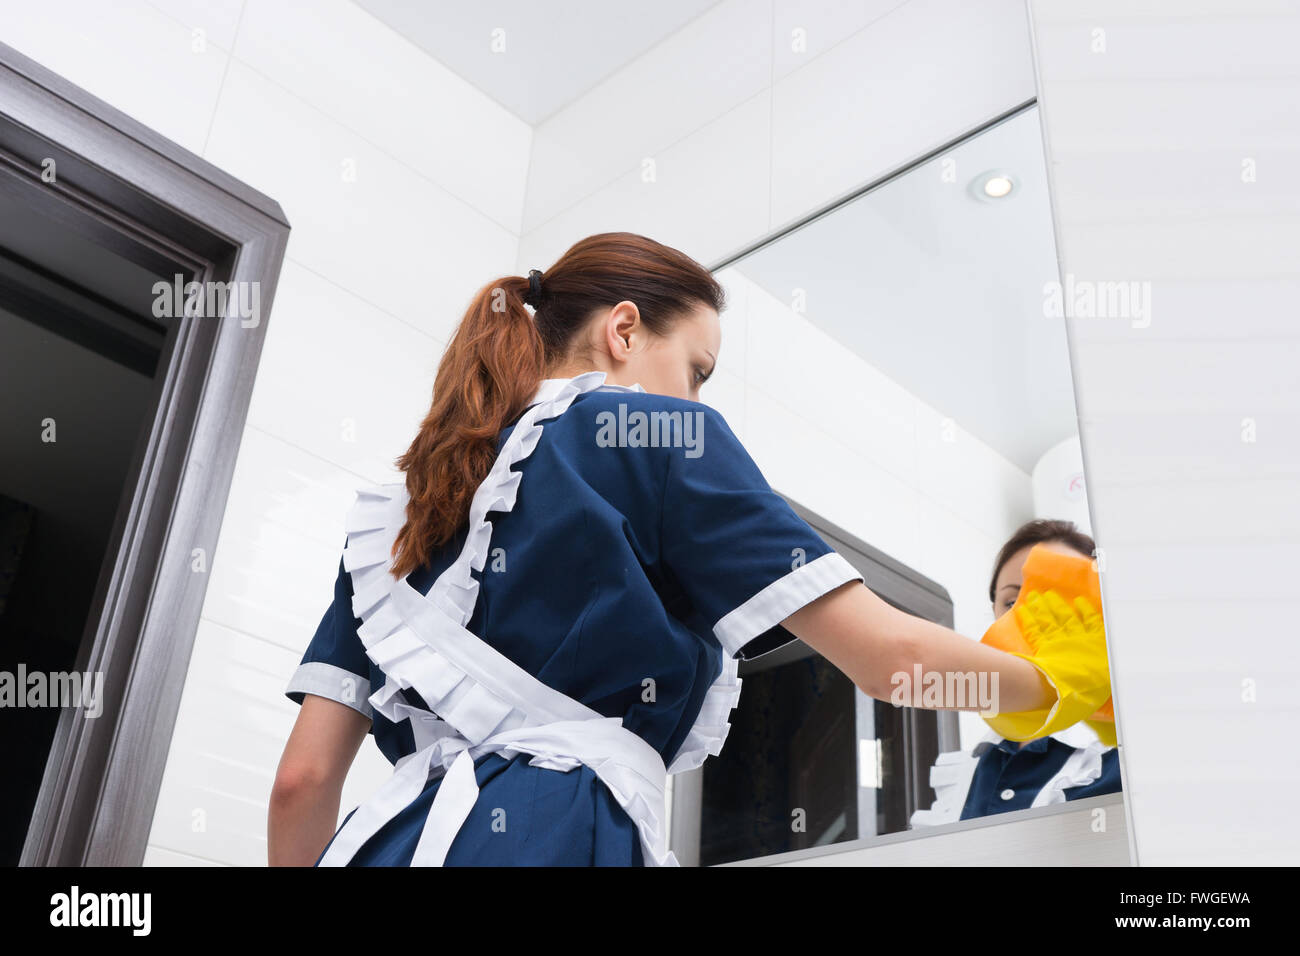 Low angle view on maid in blue and white uniform in rubber gloves cleaning large bathroom mirror - Stock Image